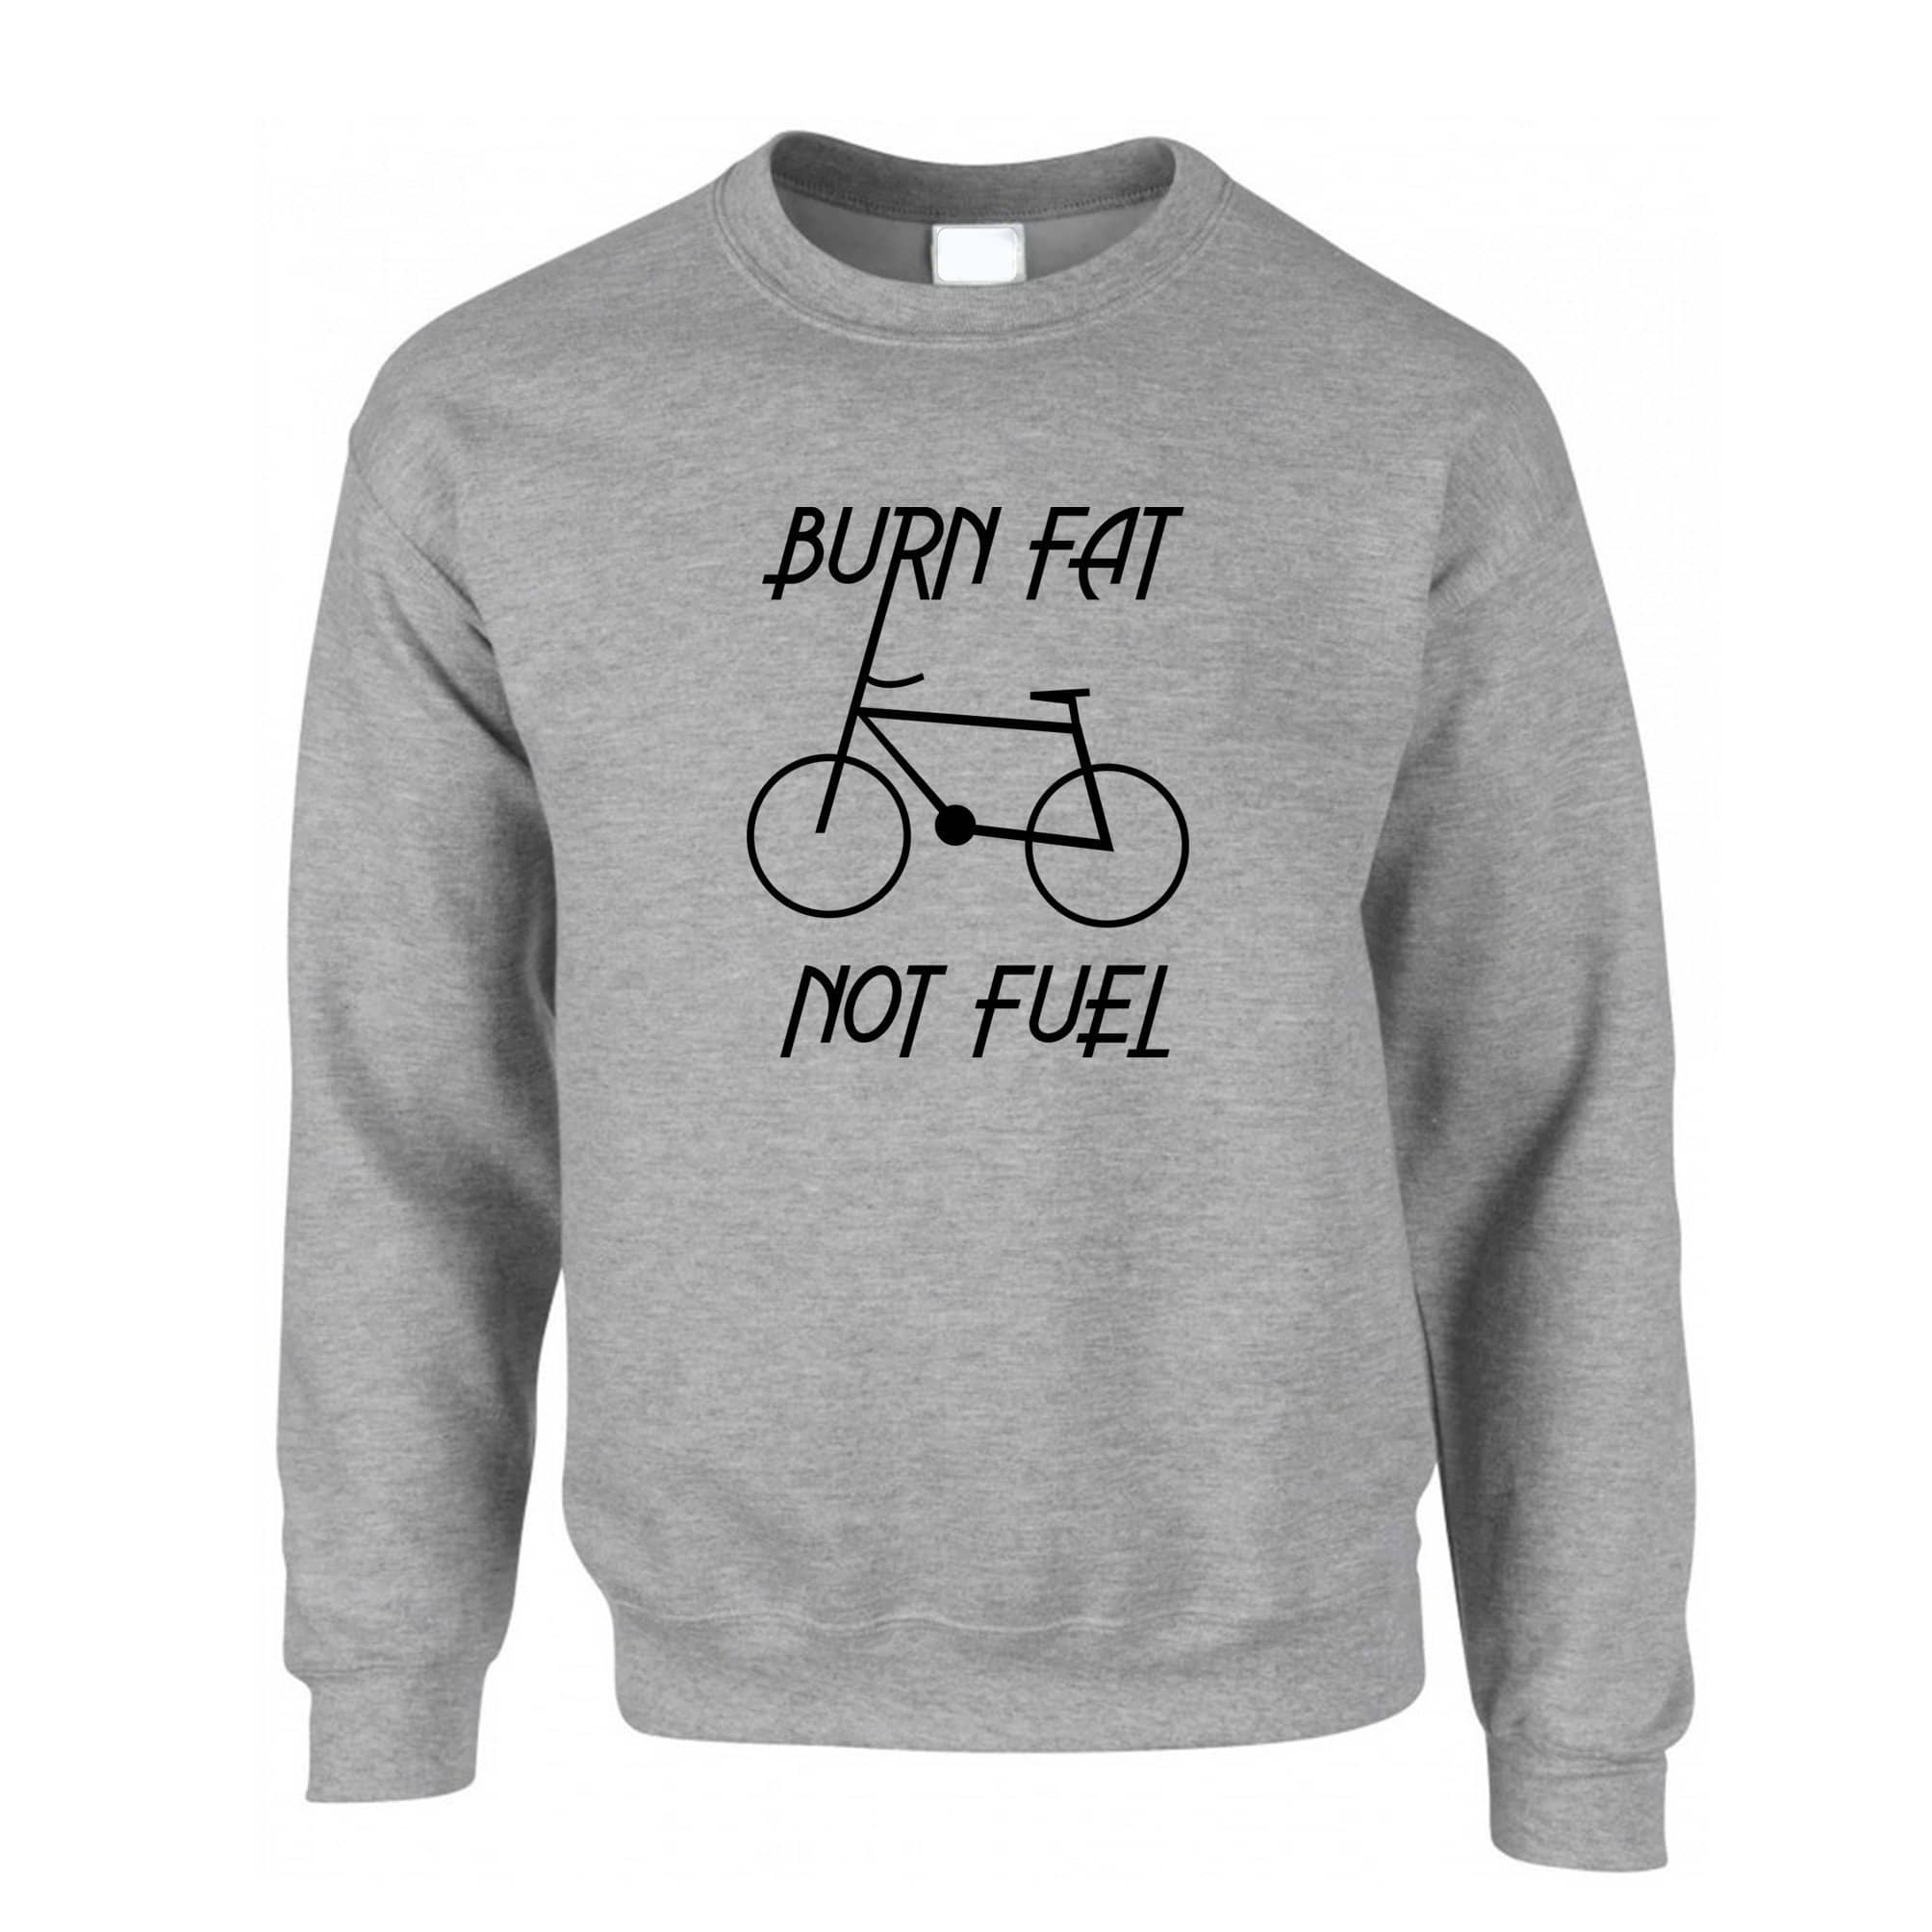 Eco Friendly Jumper Burn Fat, Not Fuel - Cycle Logo Sweatshirt Sweater